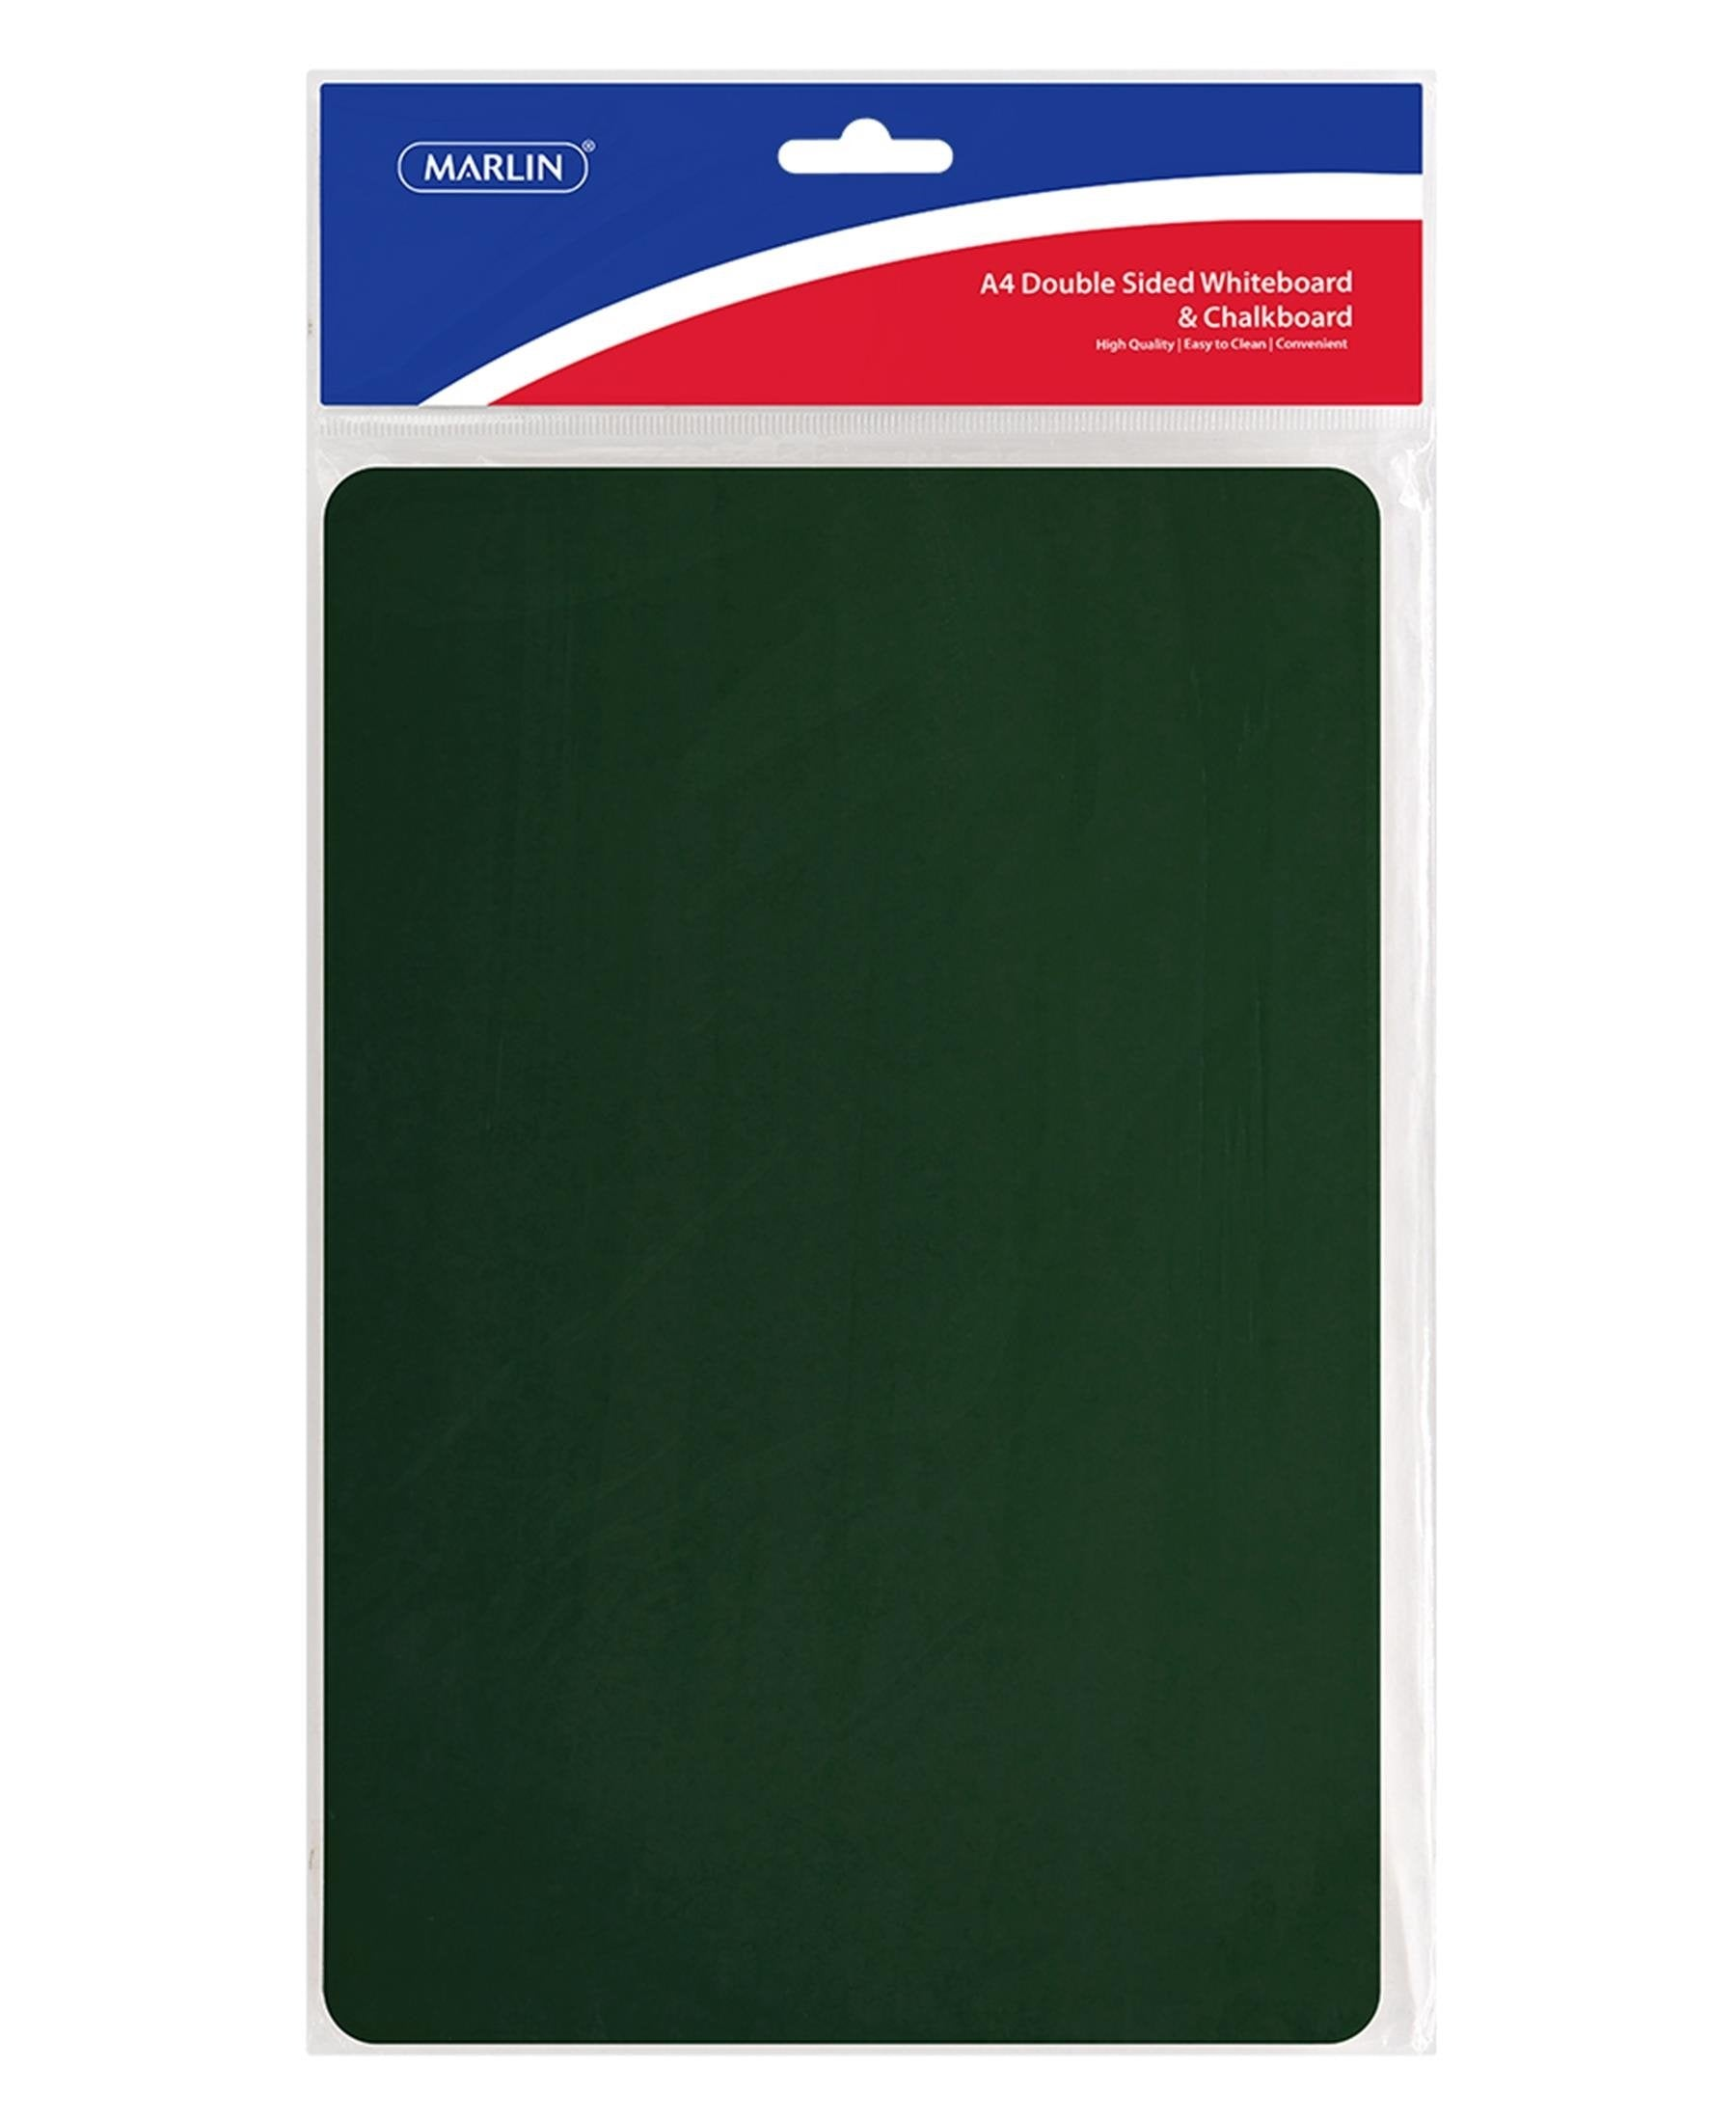 Marlin A4 Double Sided Whiteboard And Chalkboard - Green